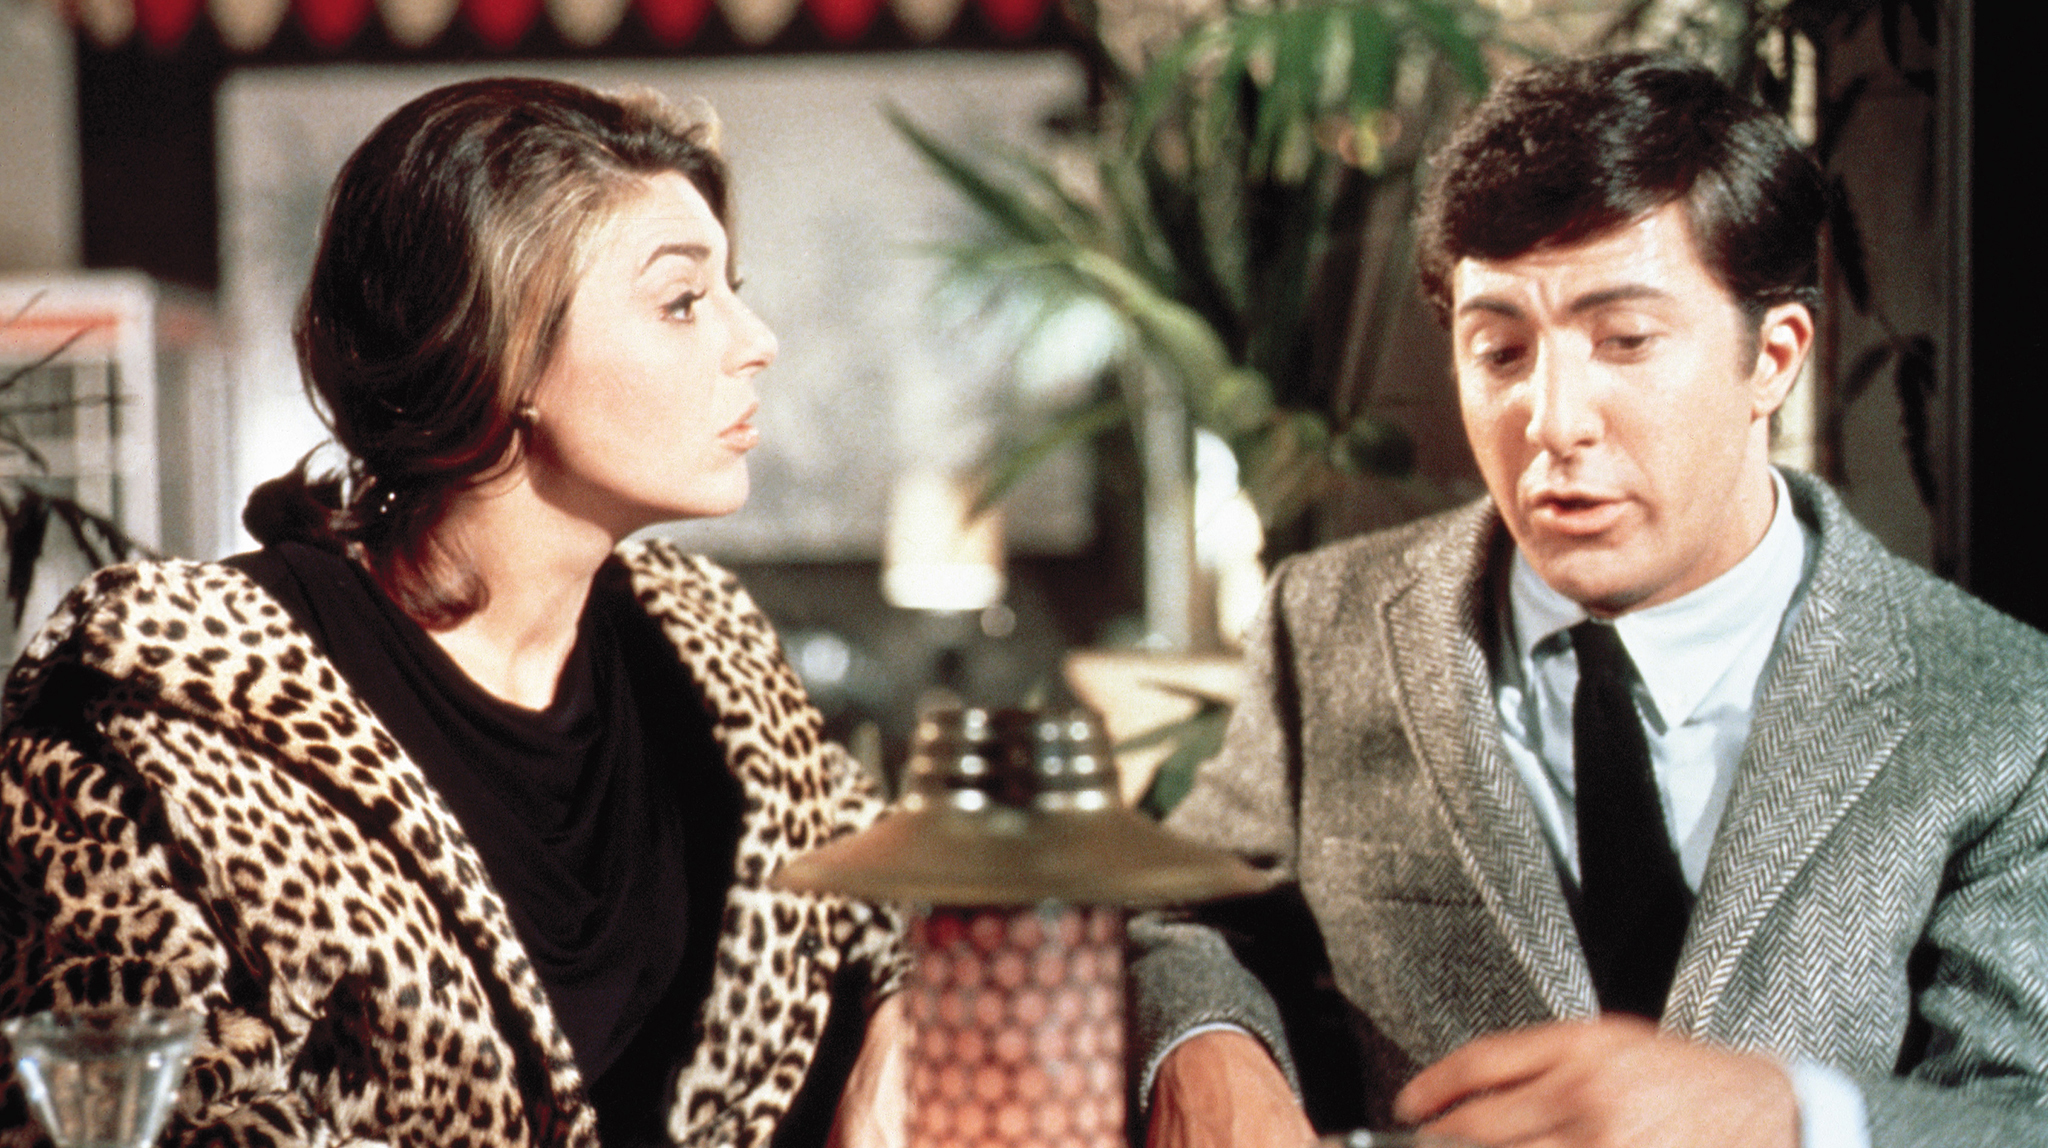 The Graduate, The 100 best movies on Netflix, edit